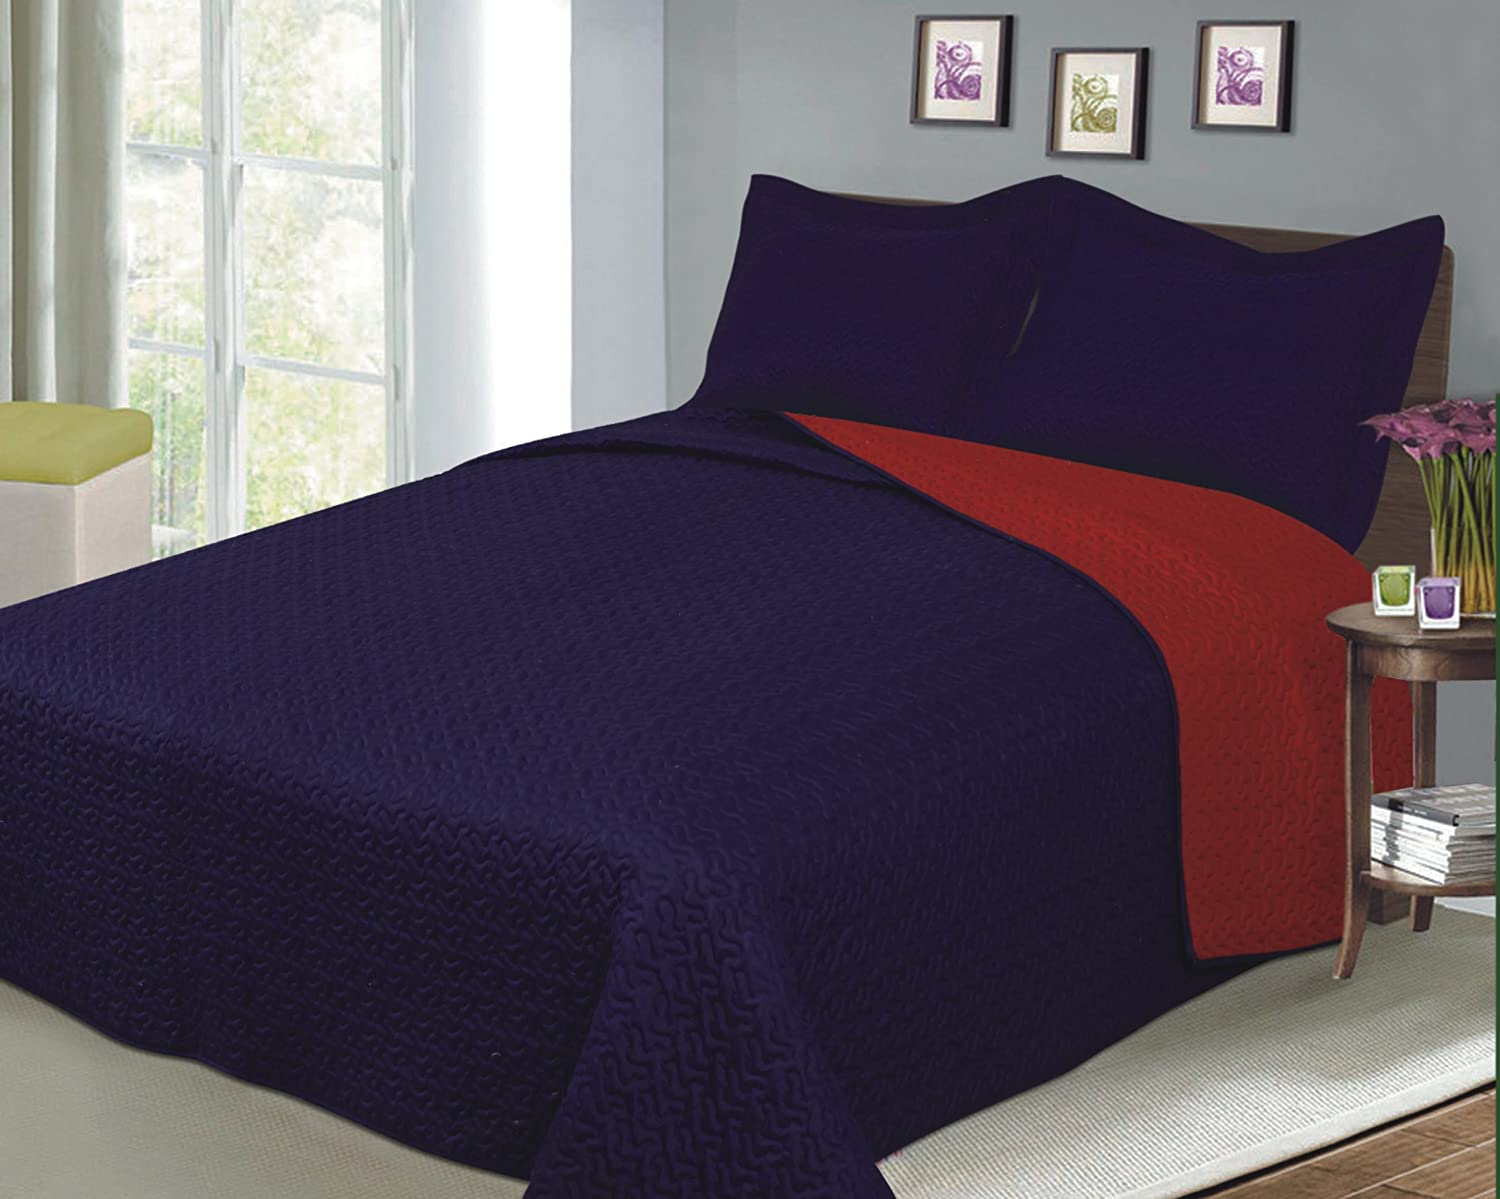 Luxury Fashionable Reversible Solid Color Mini Quilt Sets, Twin, Navy/Red